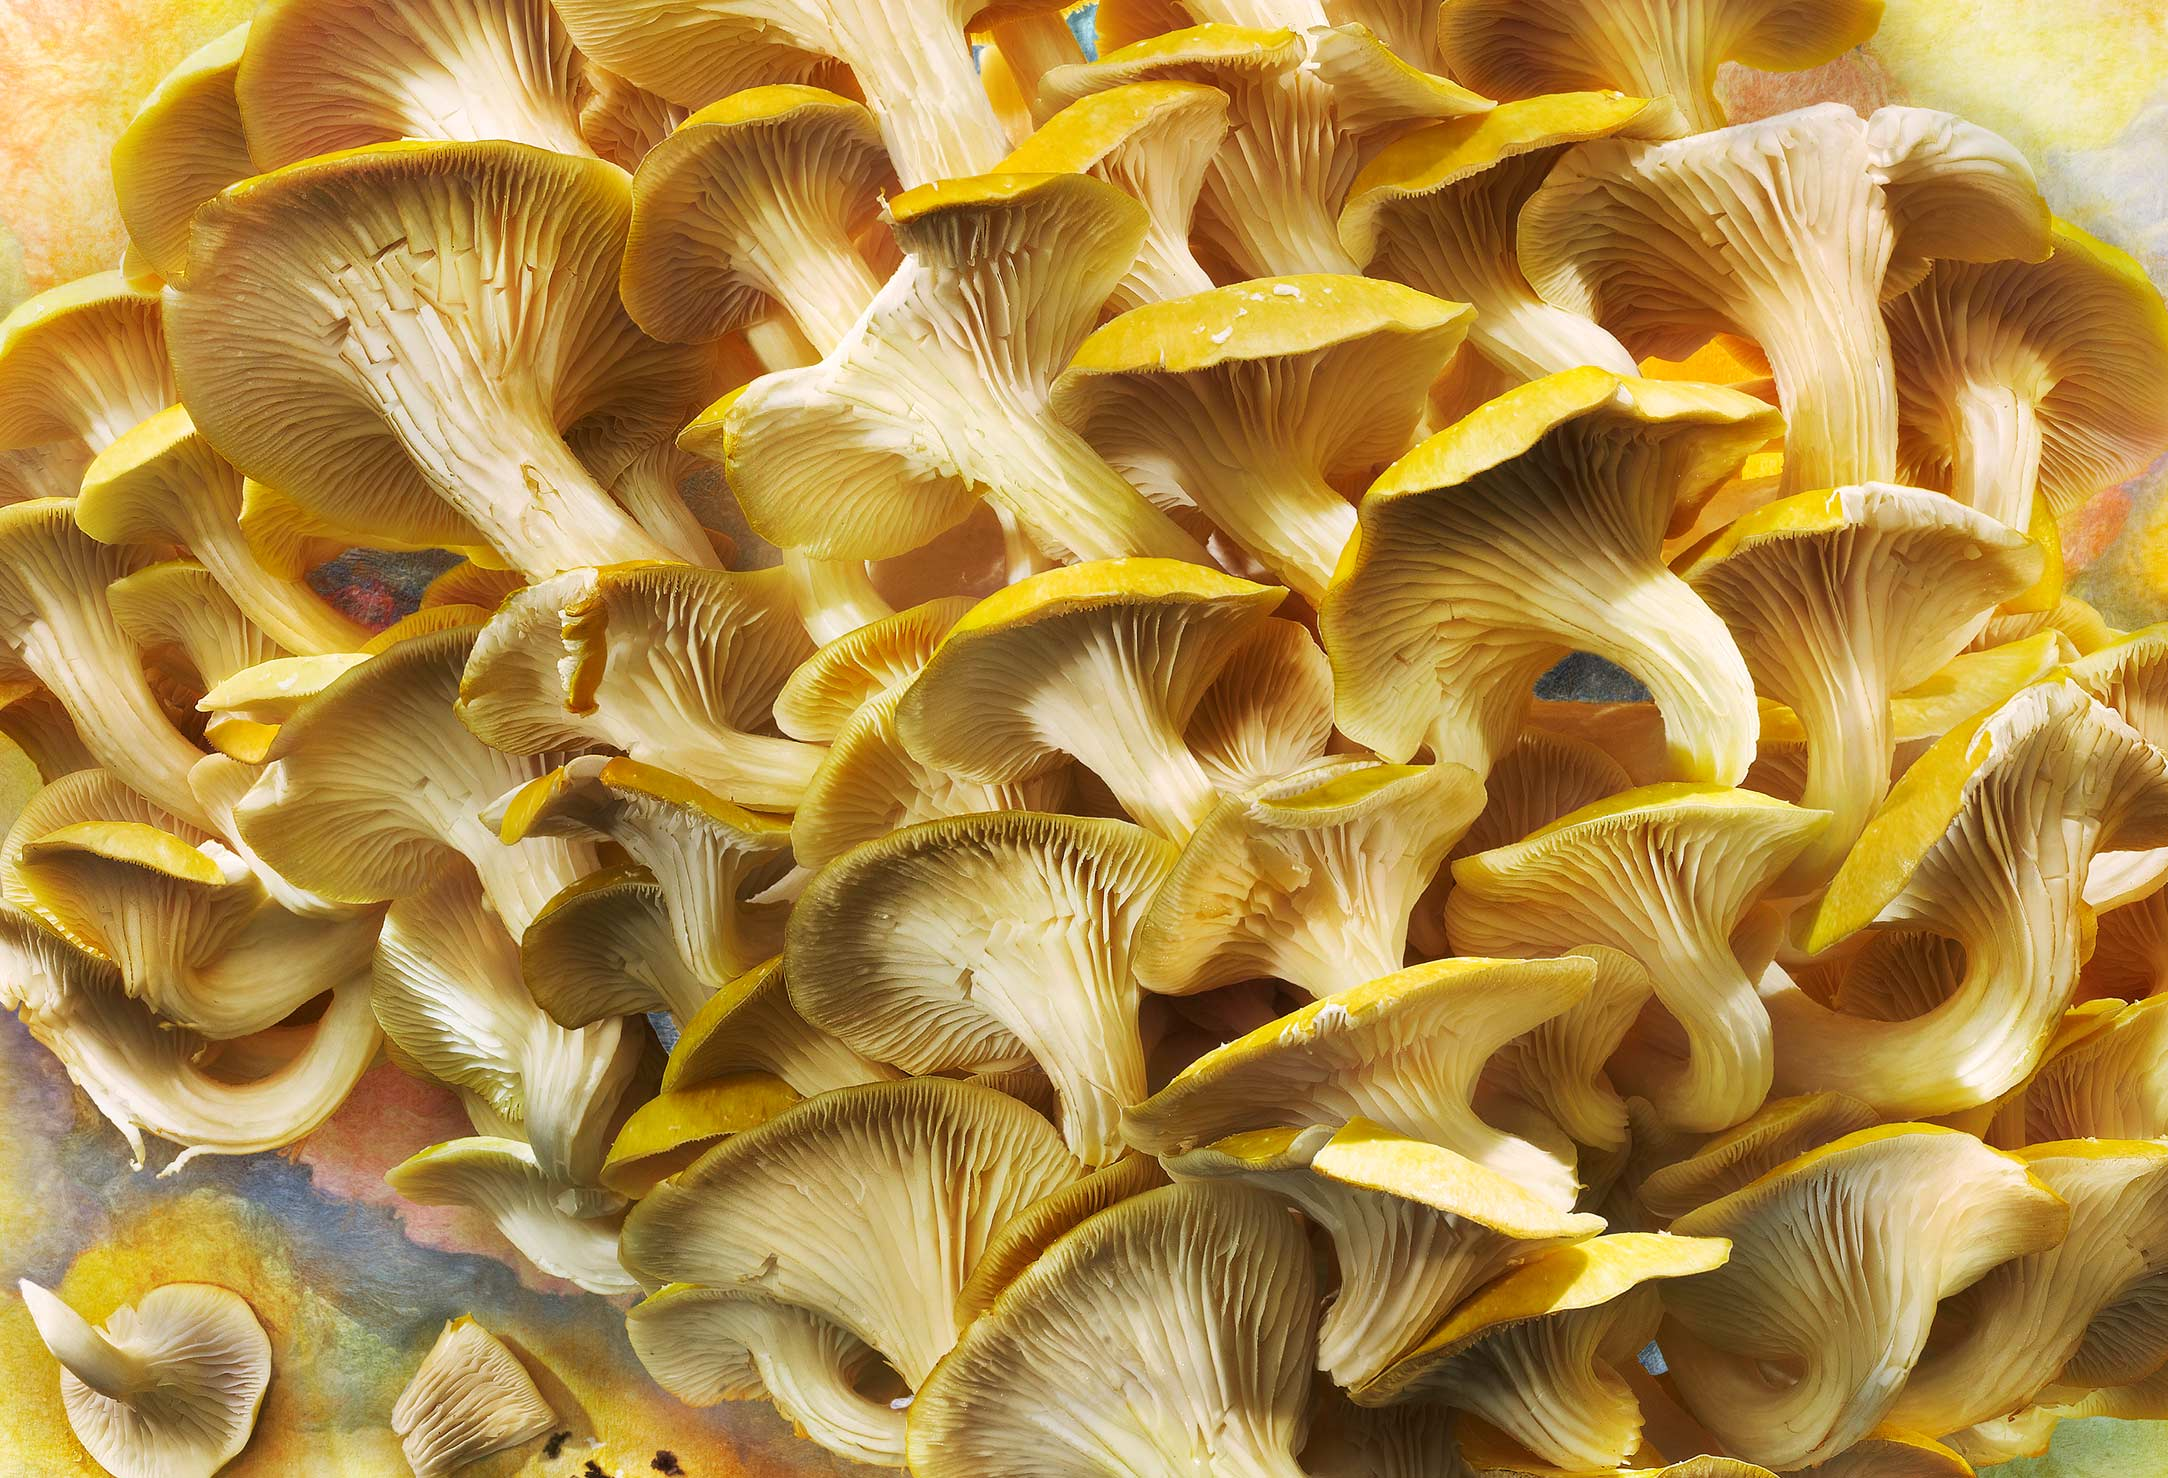 Golden Elm Mushrooms